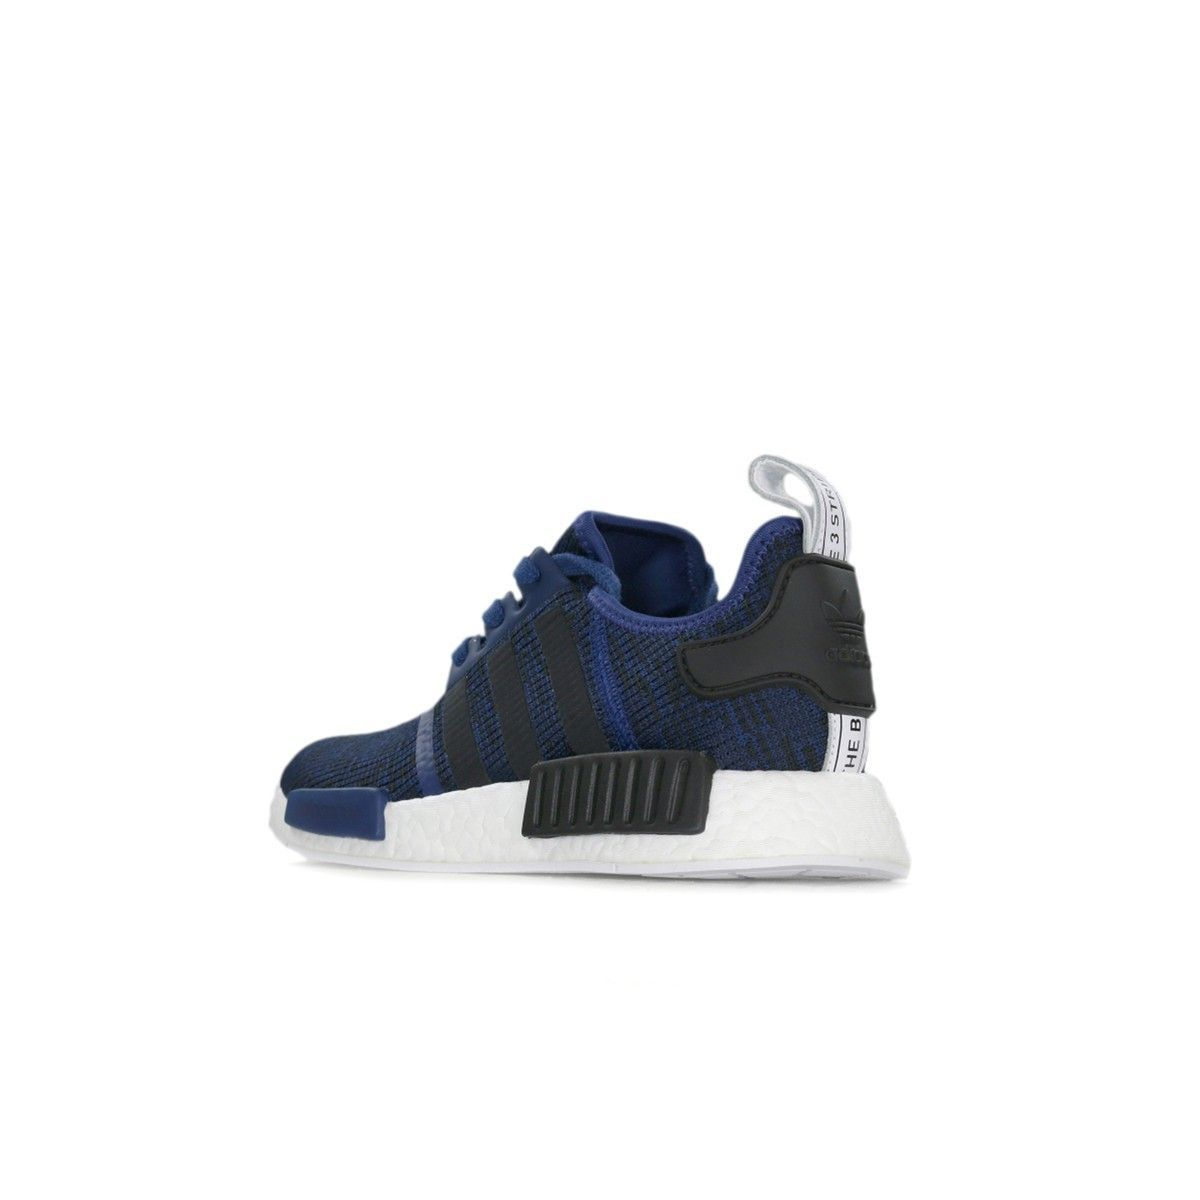 Basket adidas Originals NMD R1 BY2775 in 2019 | Products